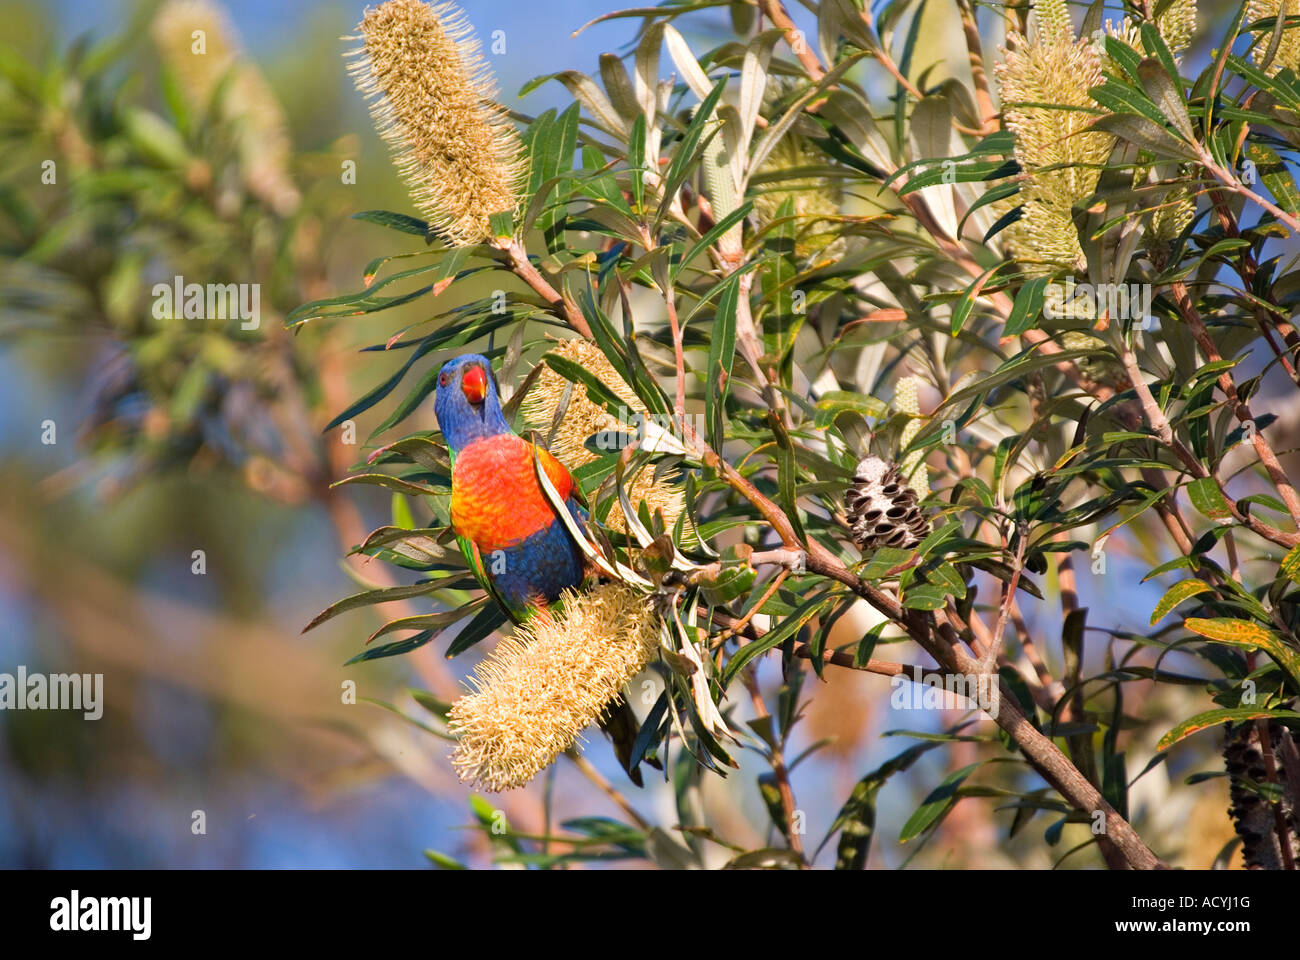 a rainbow lorikeet is eating some banksia flowers - Stock Image